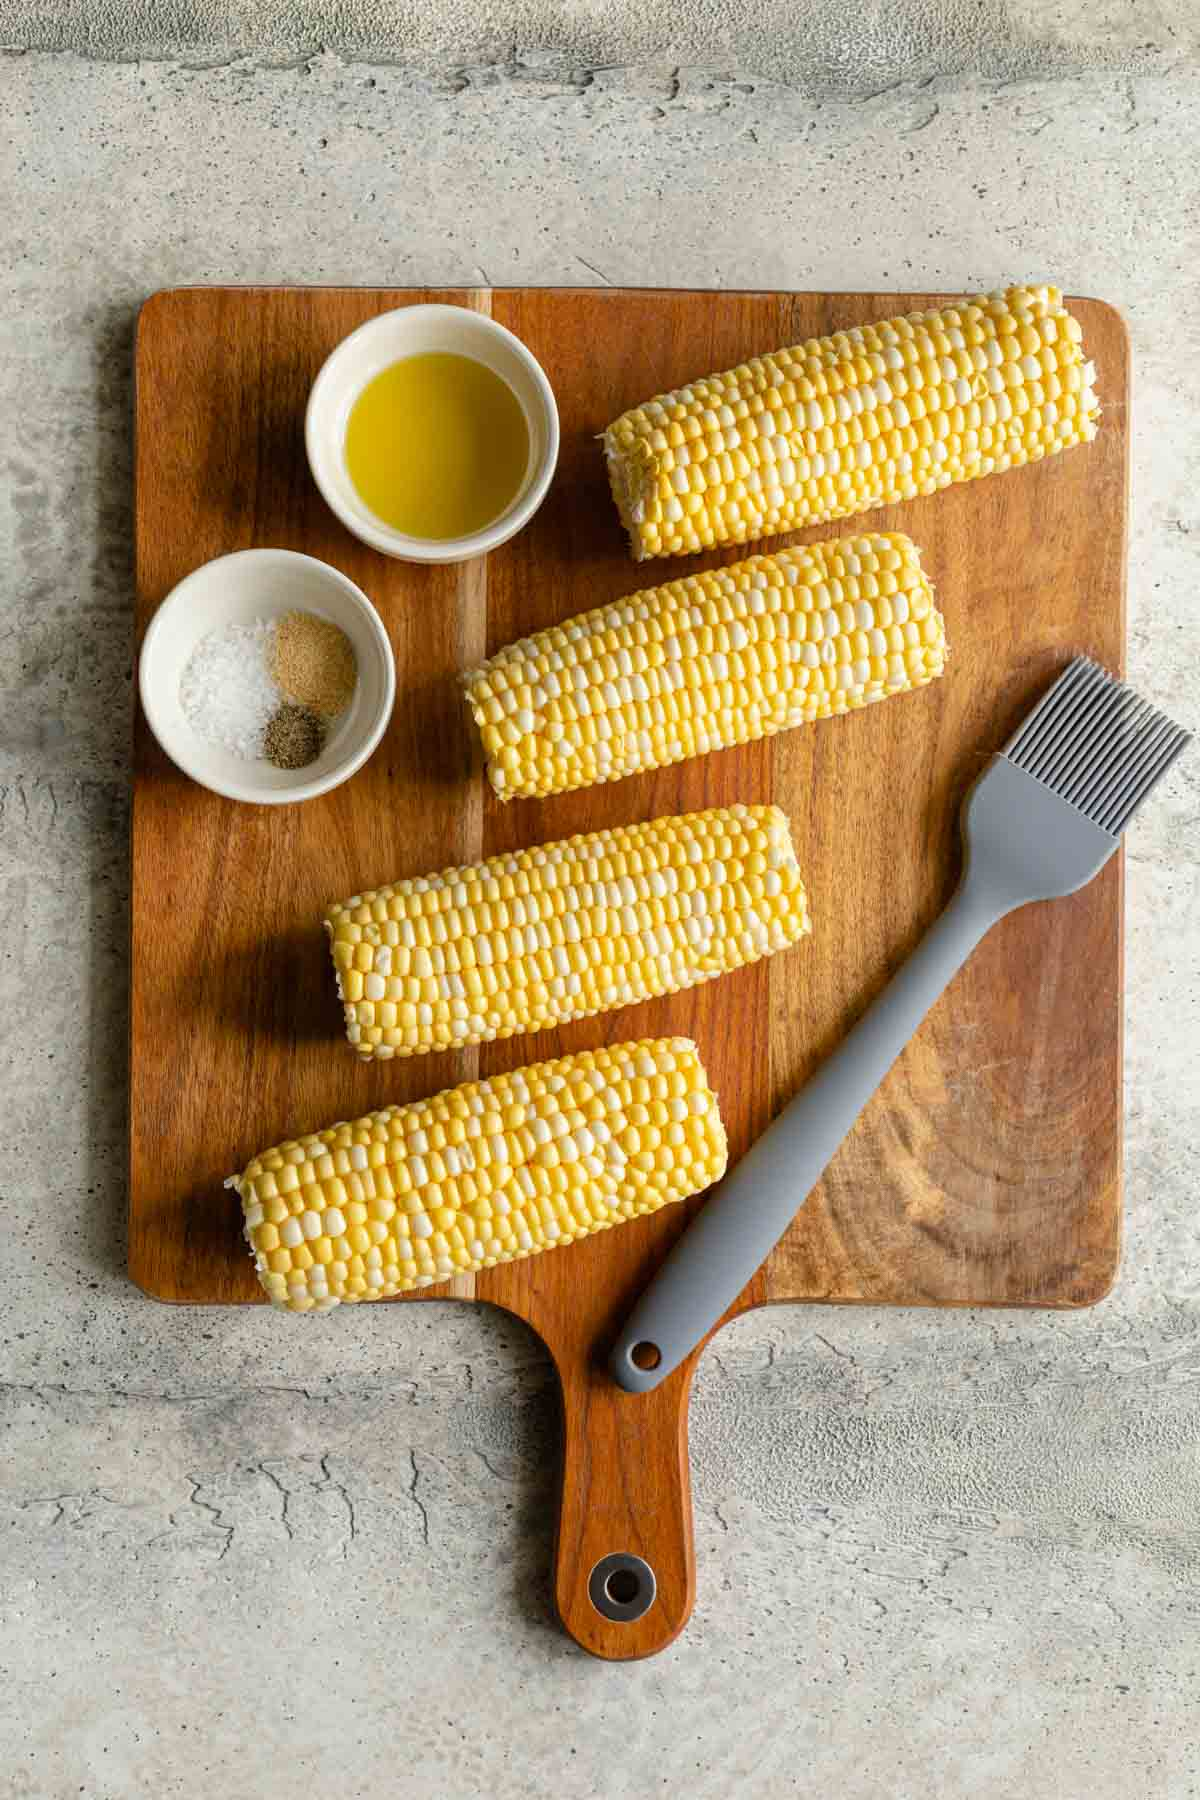 Ingredients to make air fryer corn on the cob arranged on a wooden cutting board.